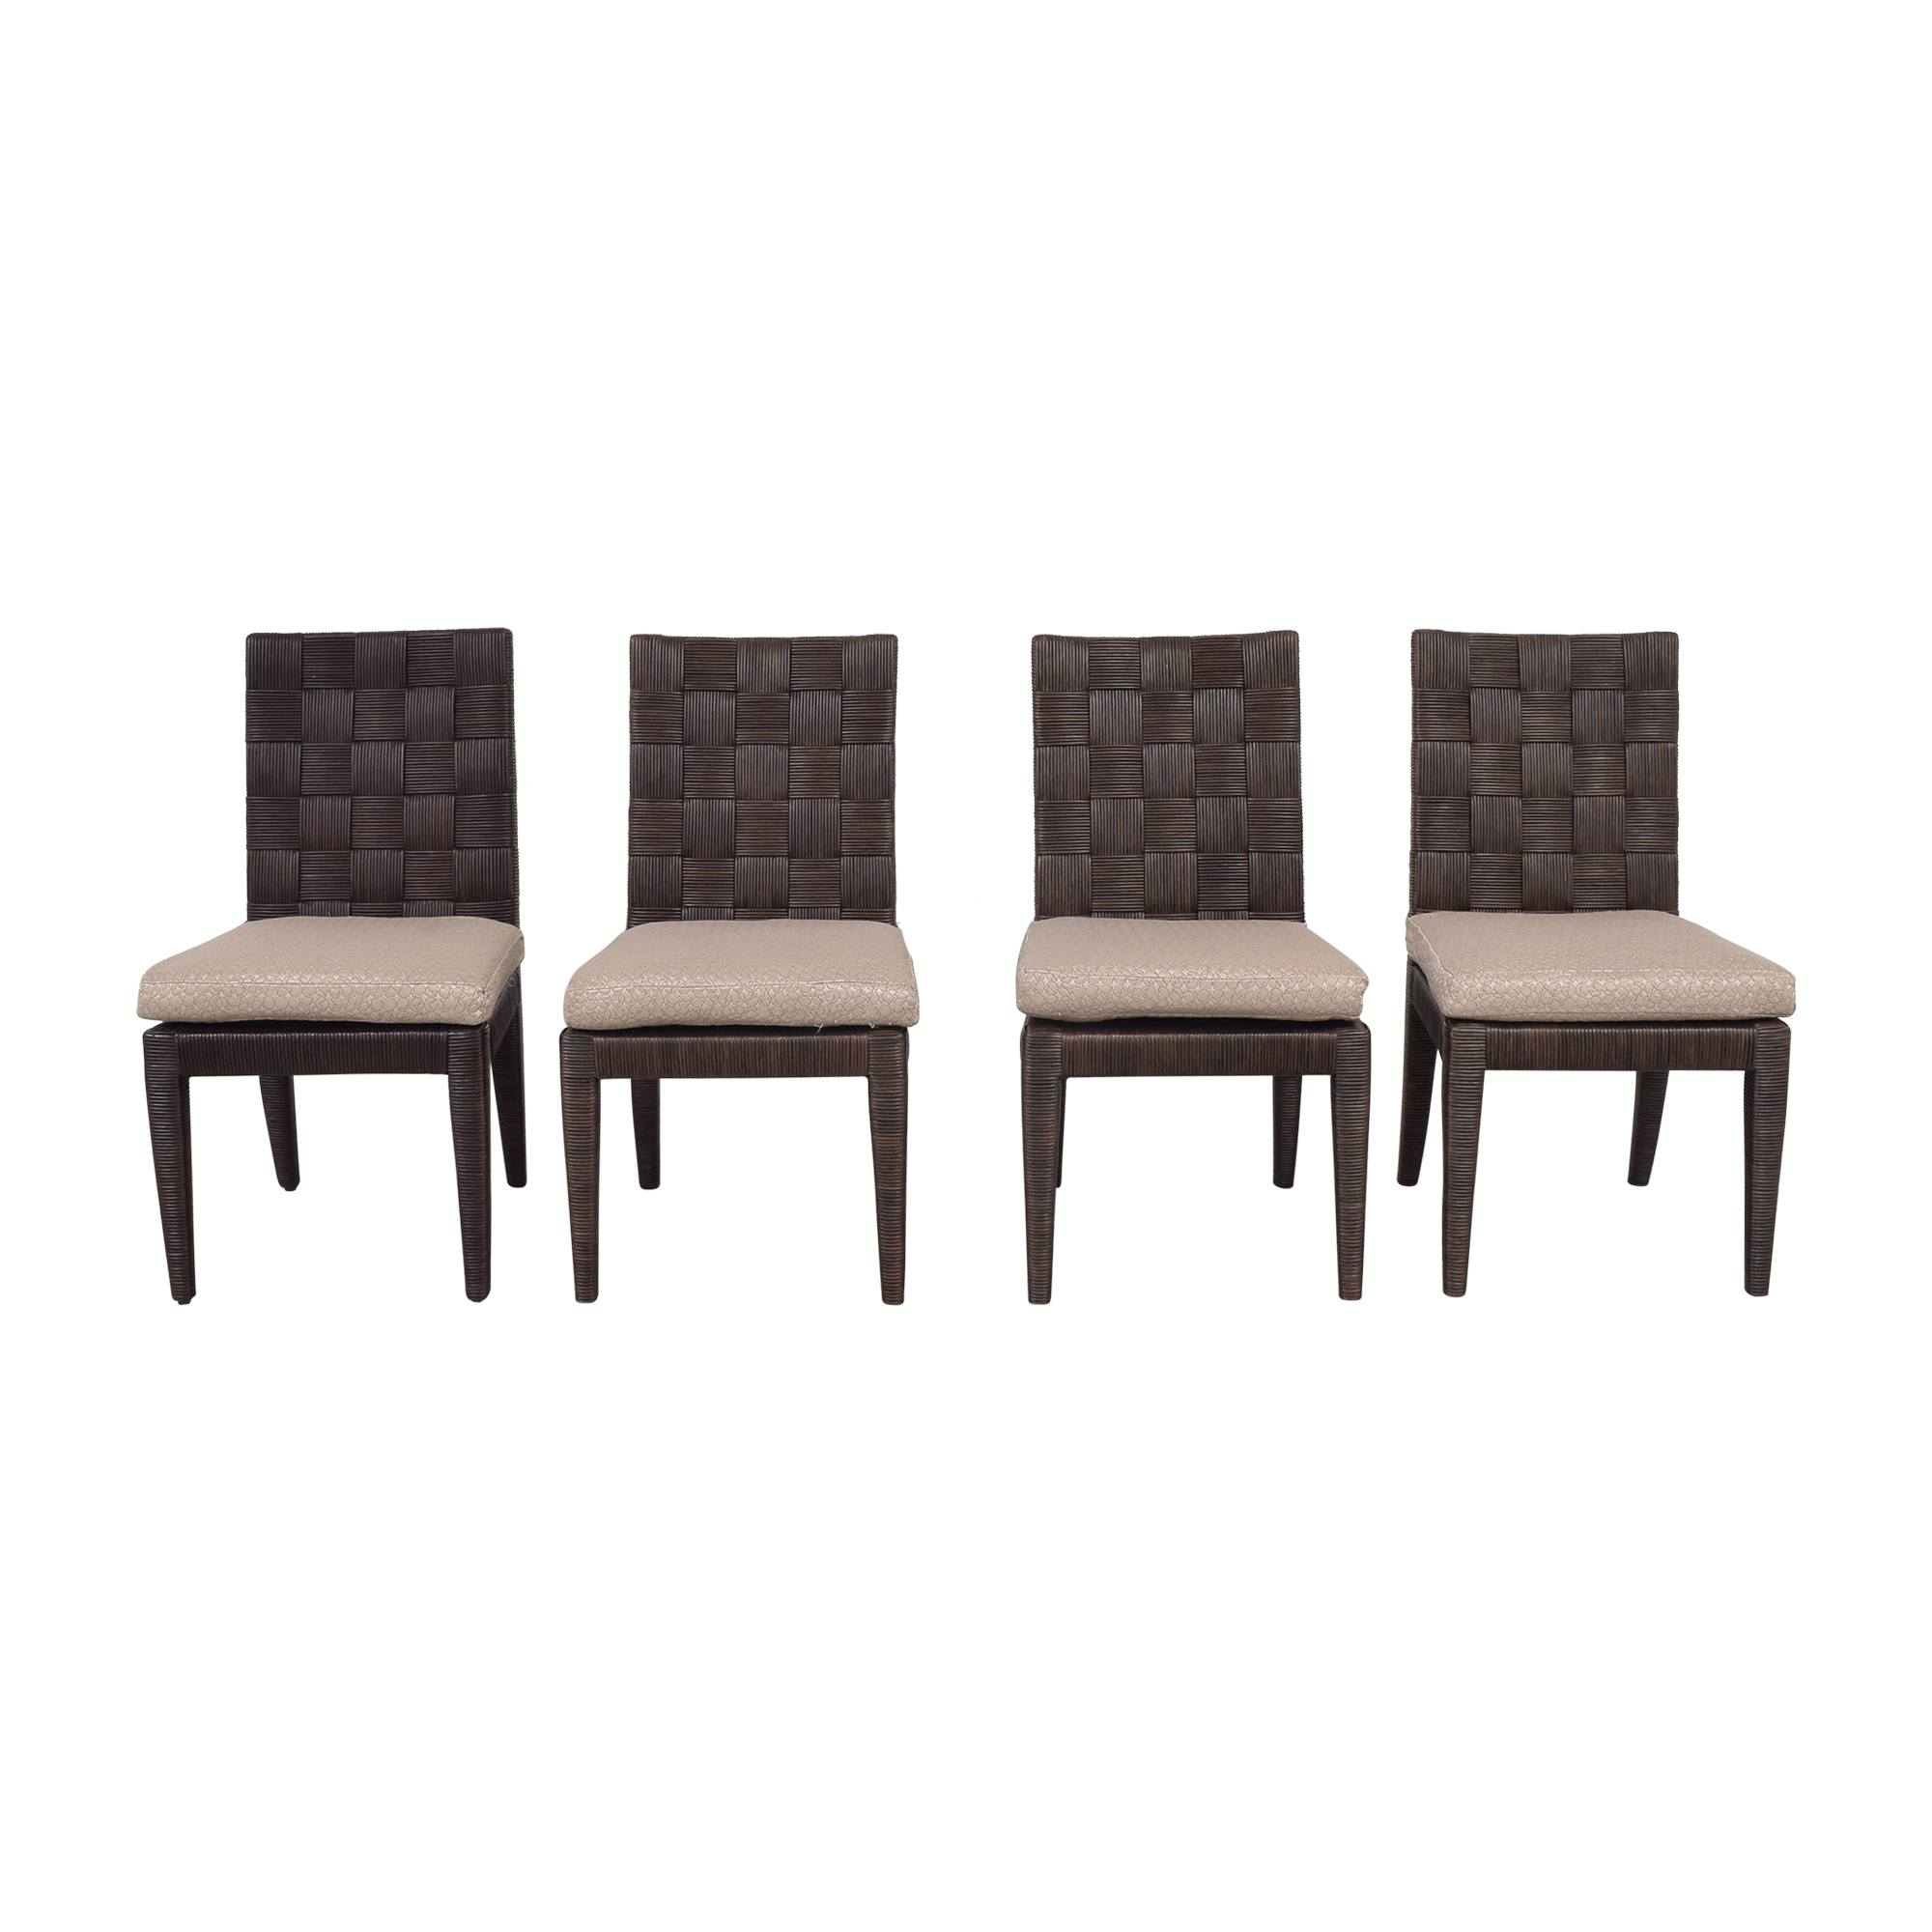 Donghia Donghia John Hutton Block Island Side Dining Chairs Dining Chairs